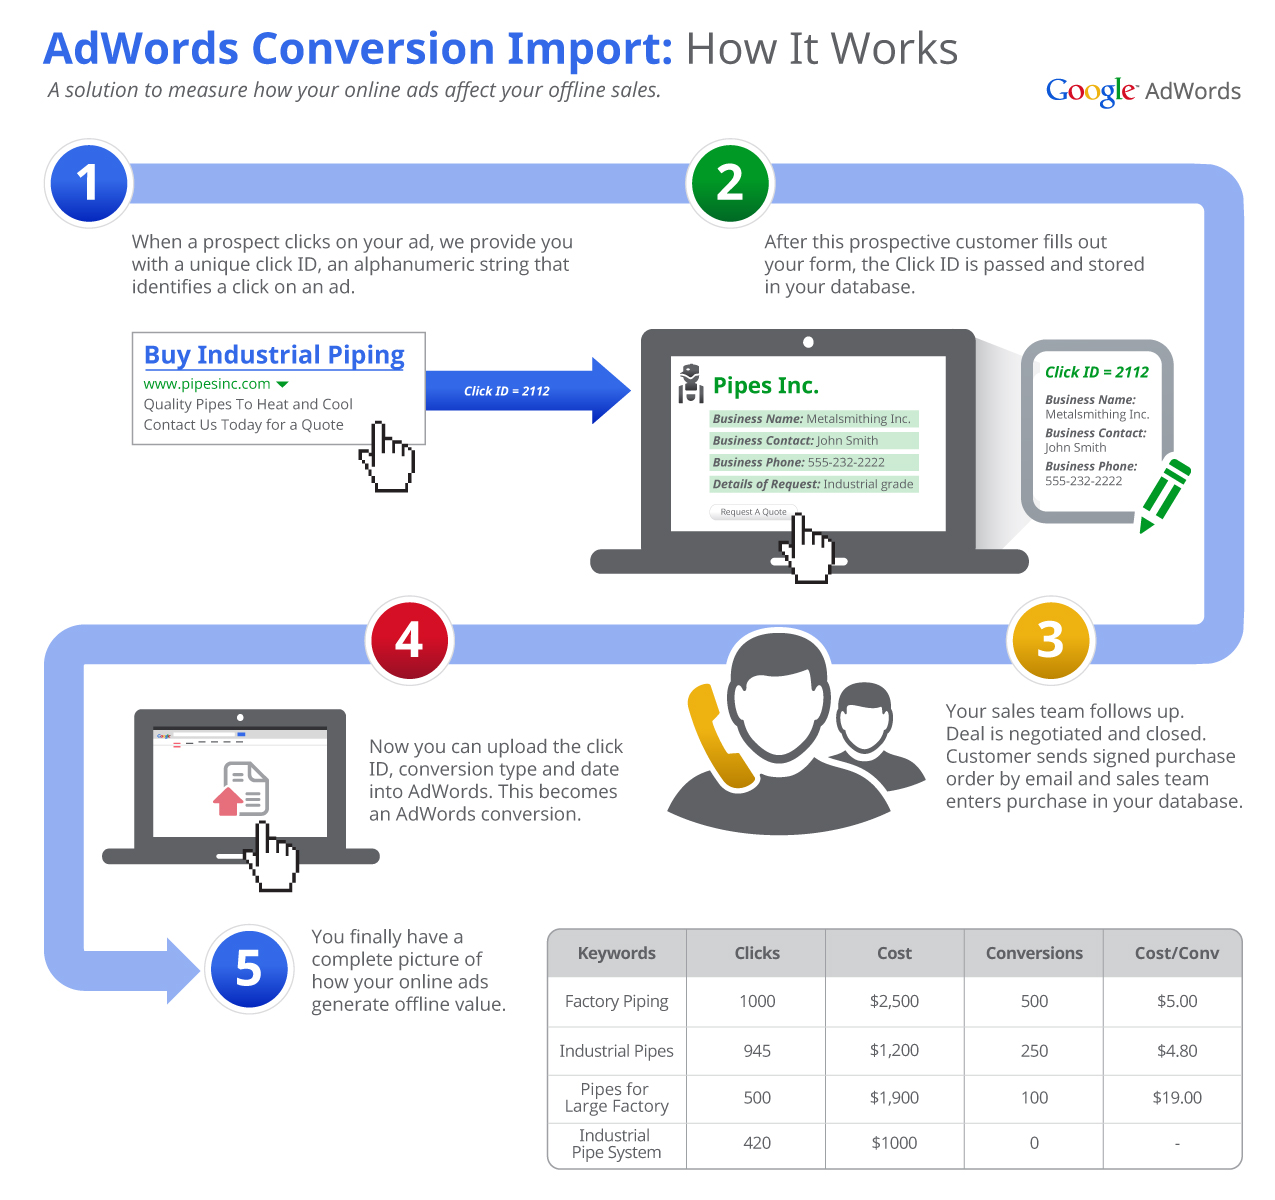 Adwords Conversion Import